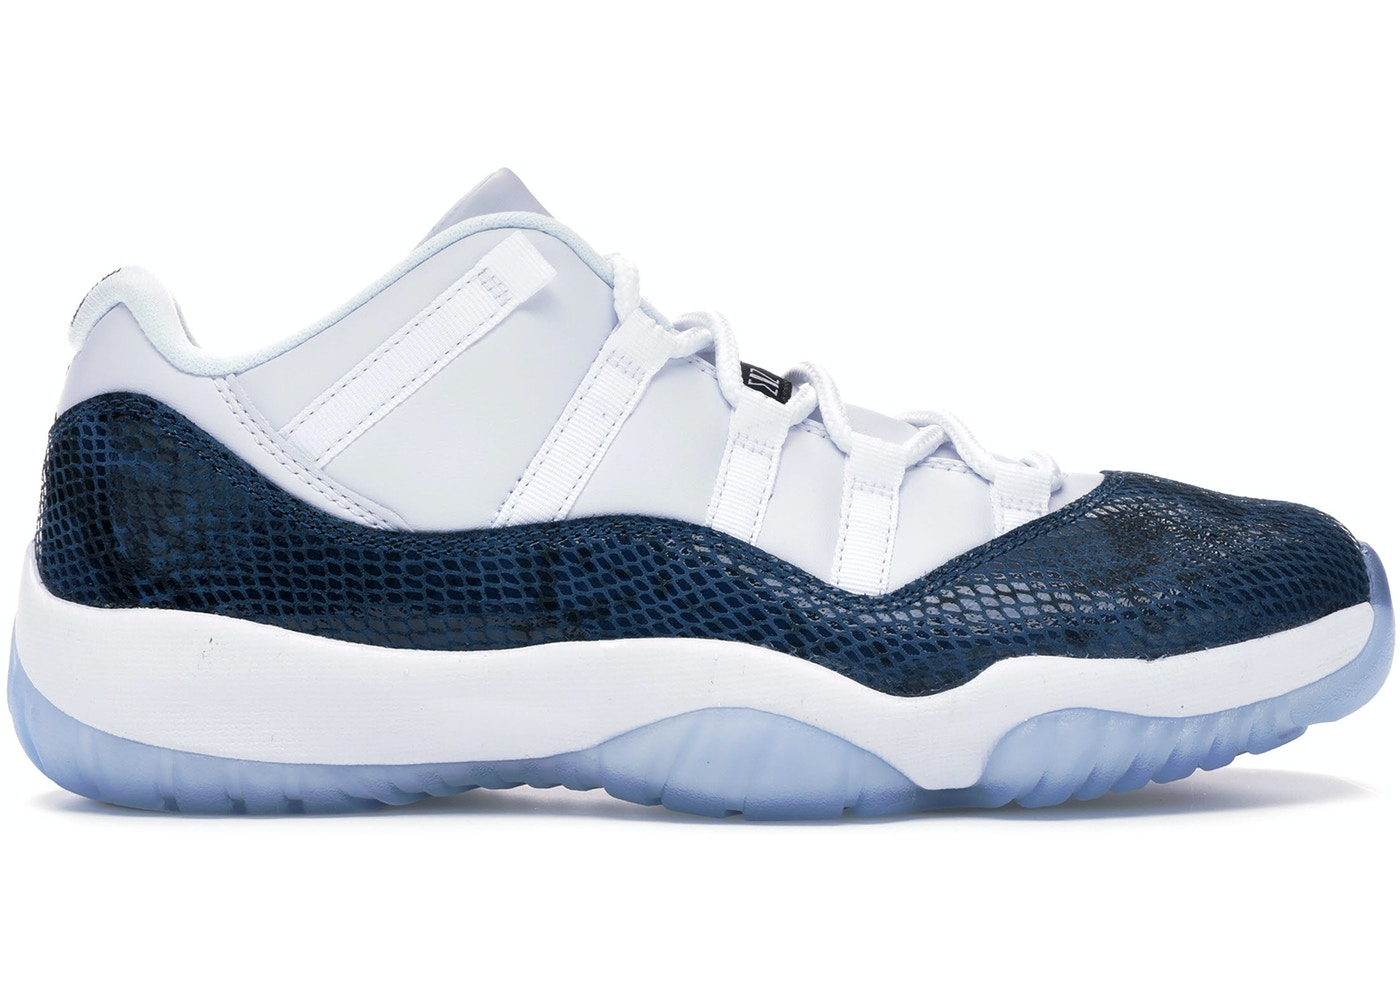 separation shoes ccc4a 0a6c2 Sell. or Ask. Size 8. View All Bids. Jordan 11 Retro Low Snake Navy (2019)